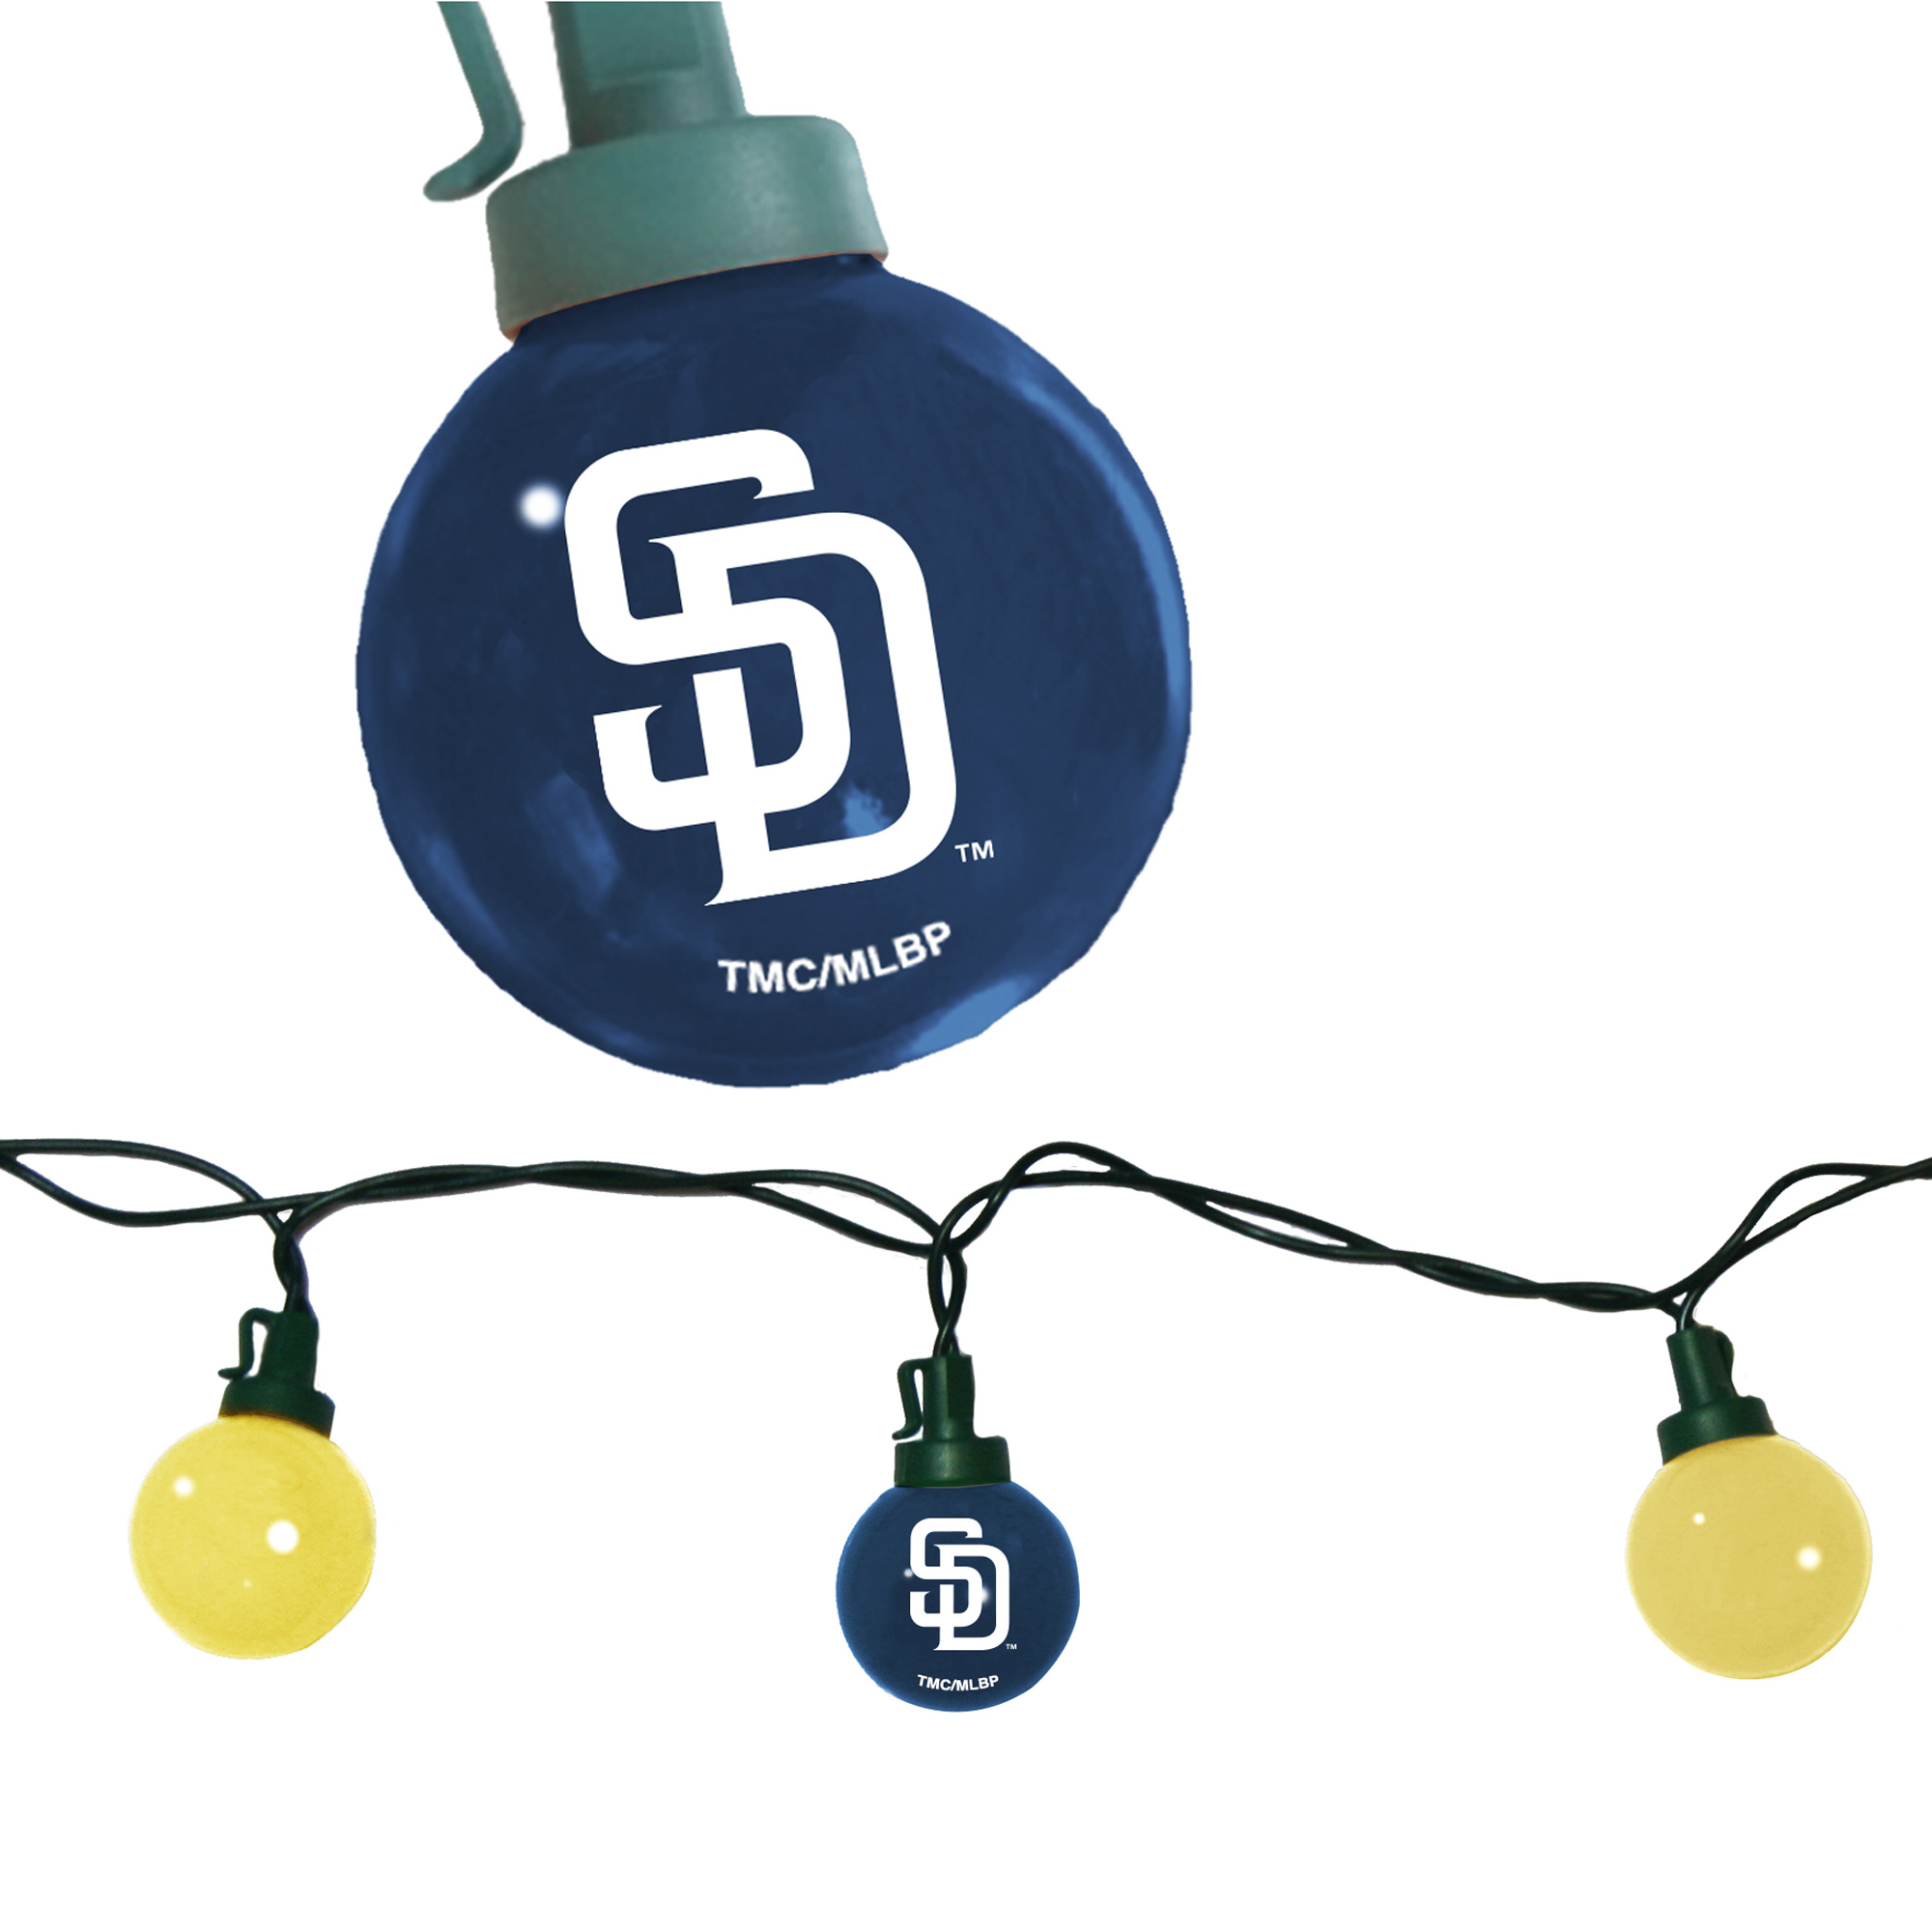 San Diego Padres 8' Team Tailgate String Lights - No Size